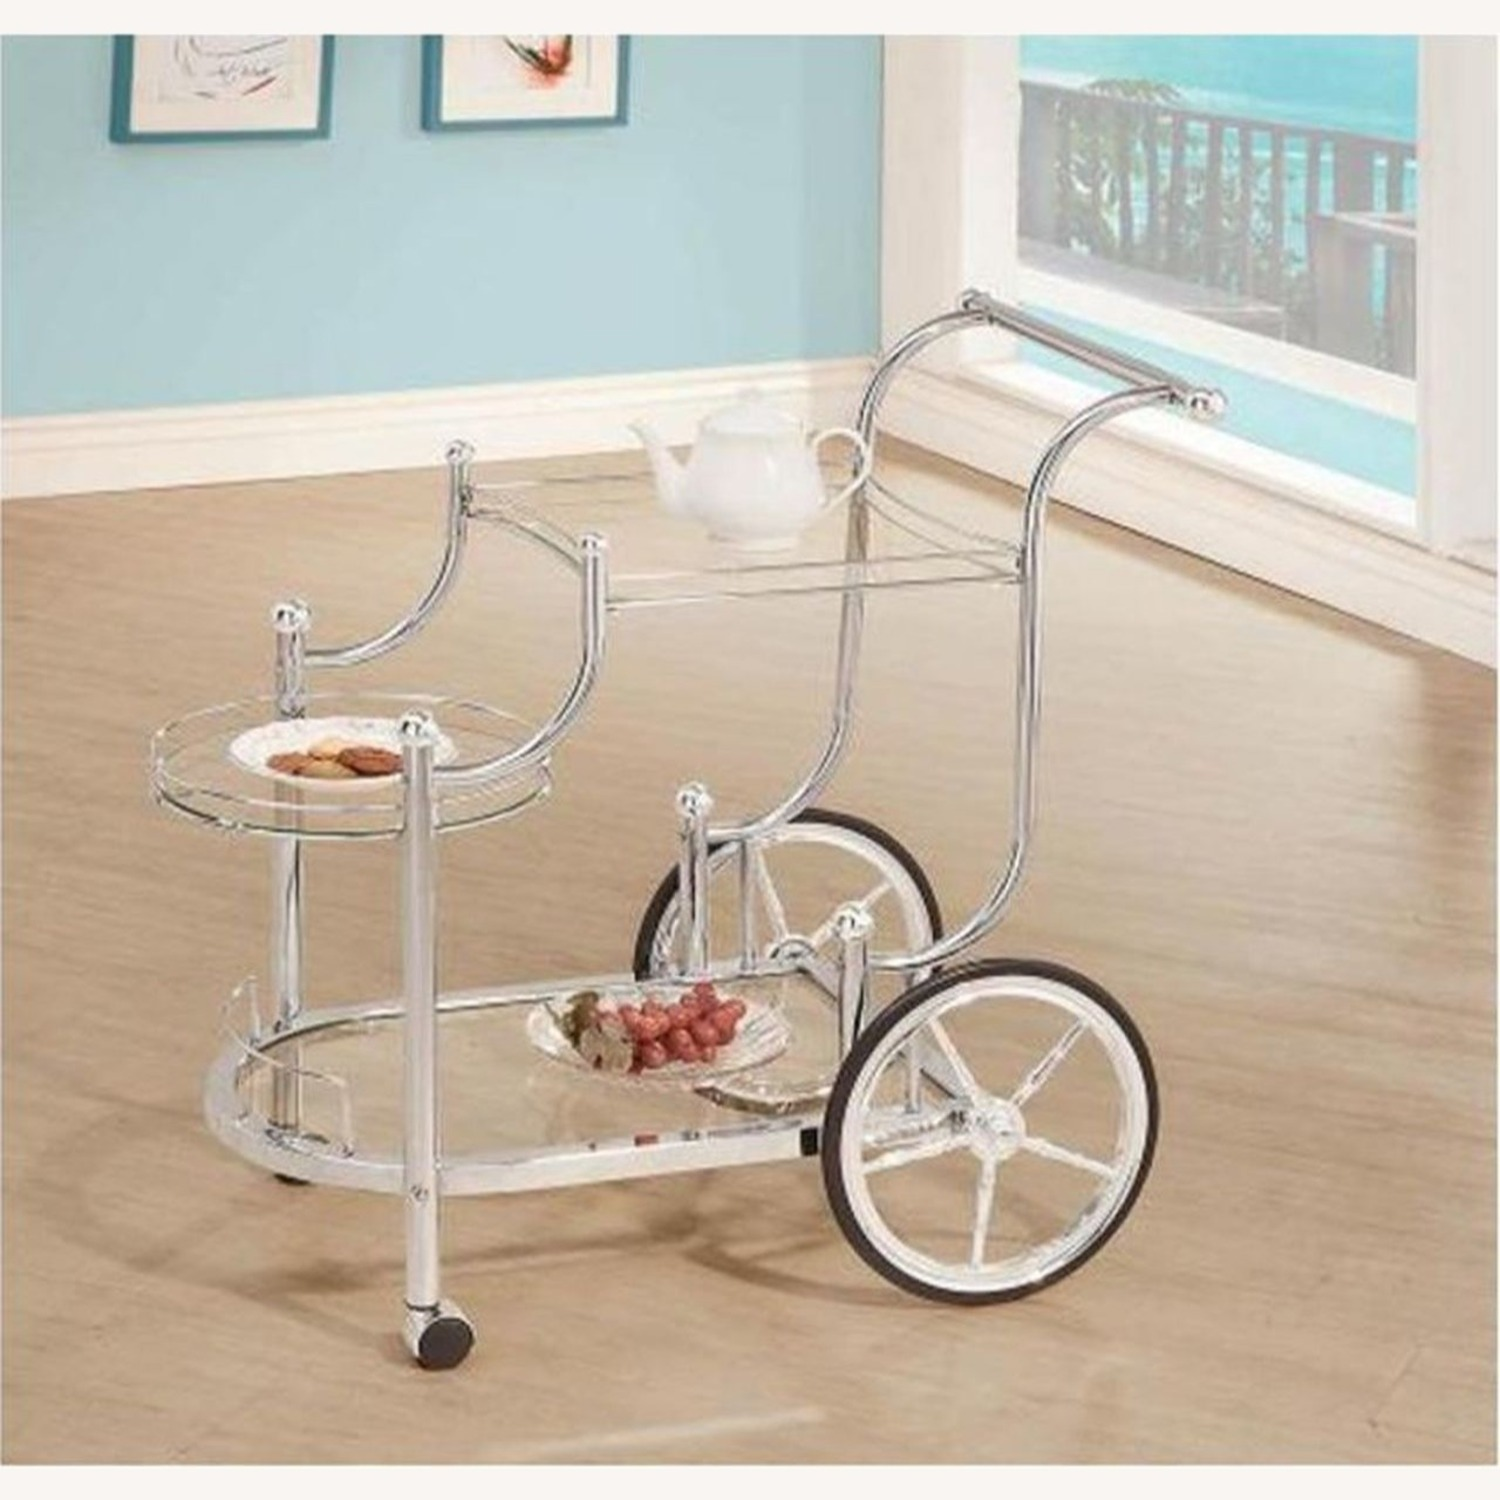 Serving Cart In Chrome Finish W/ Tempered Glass - image-2